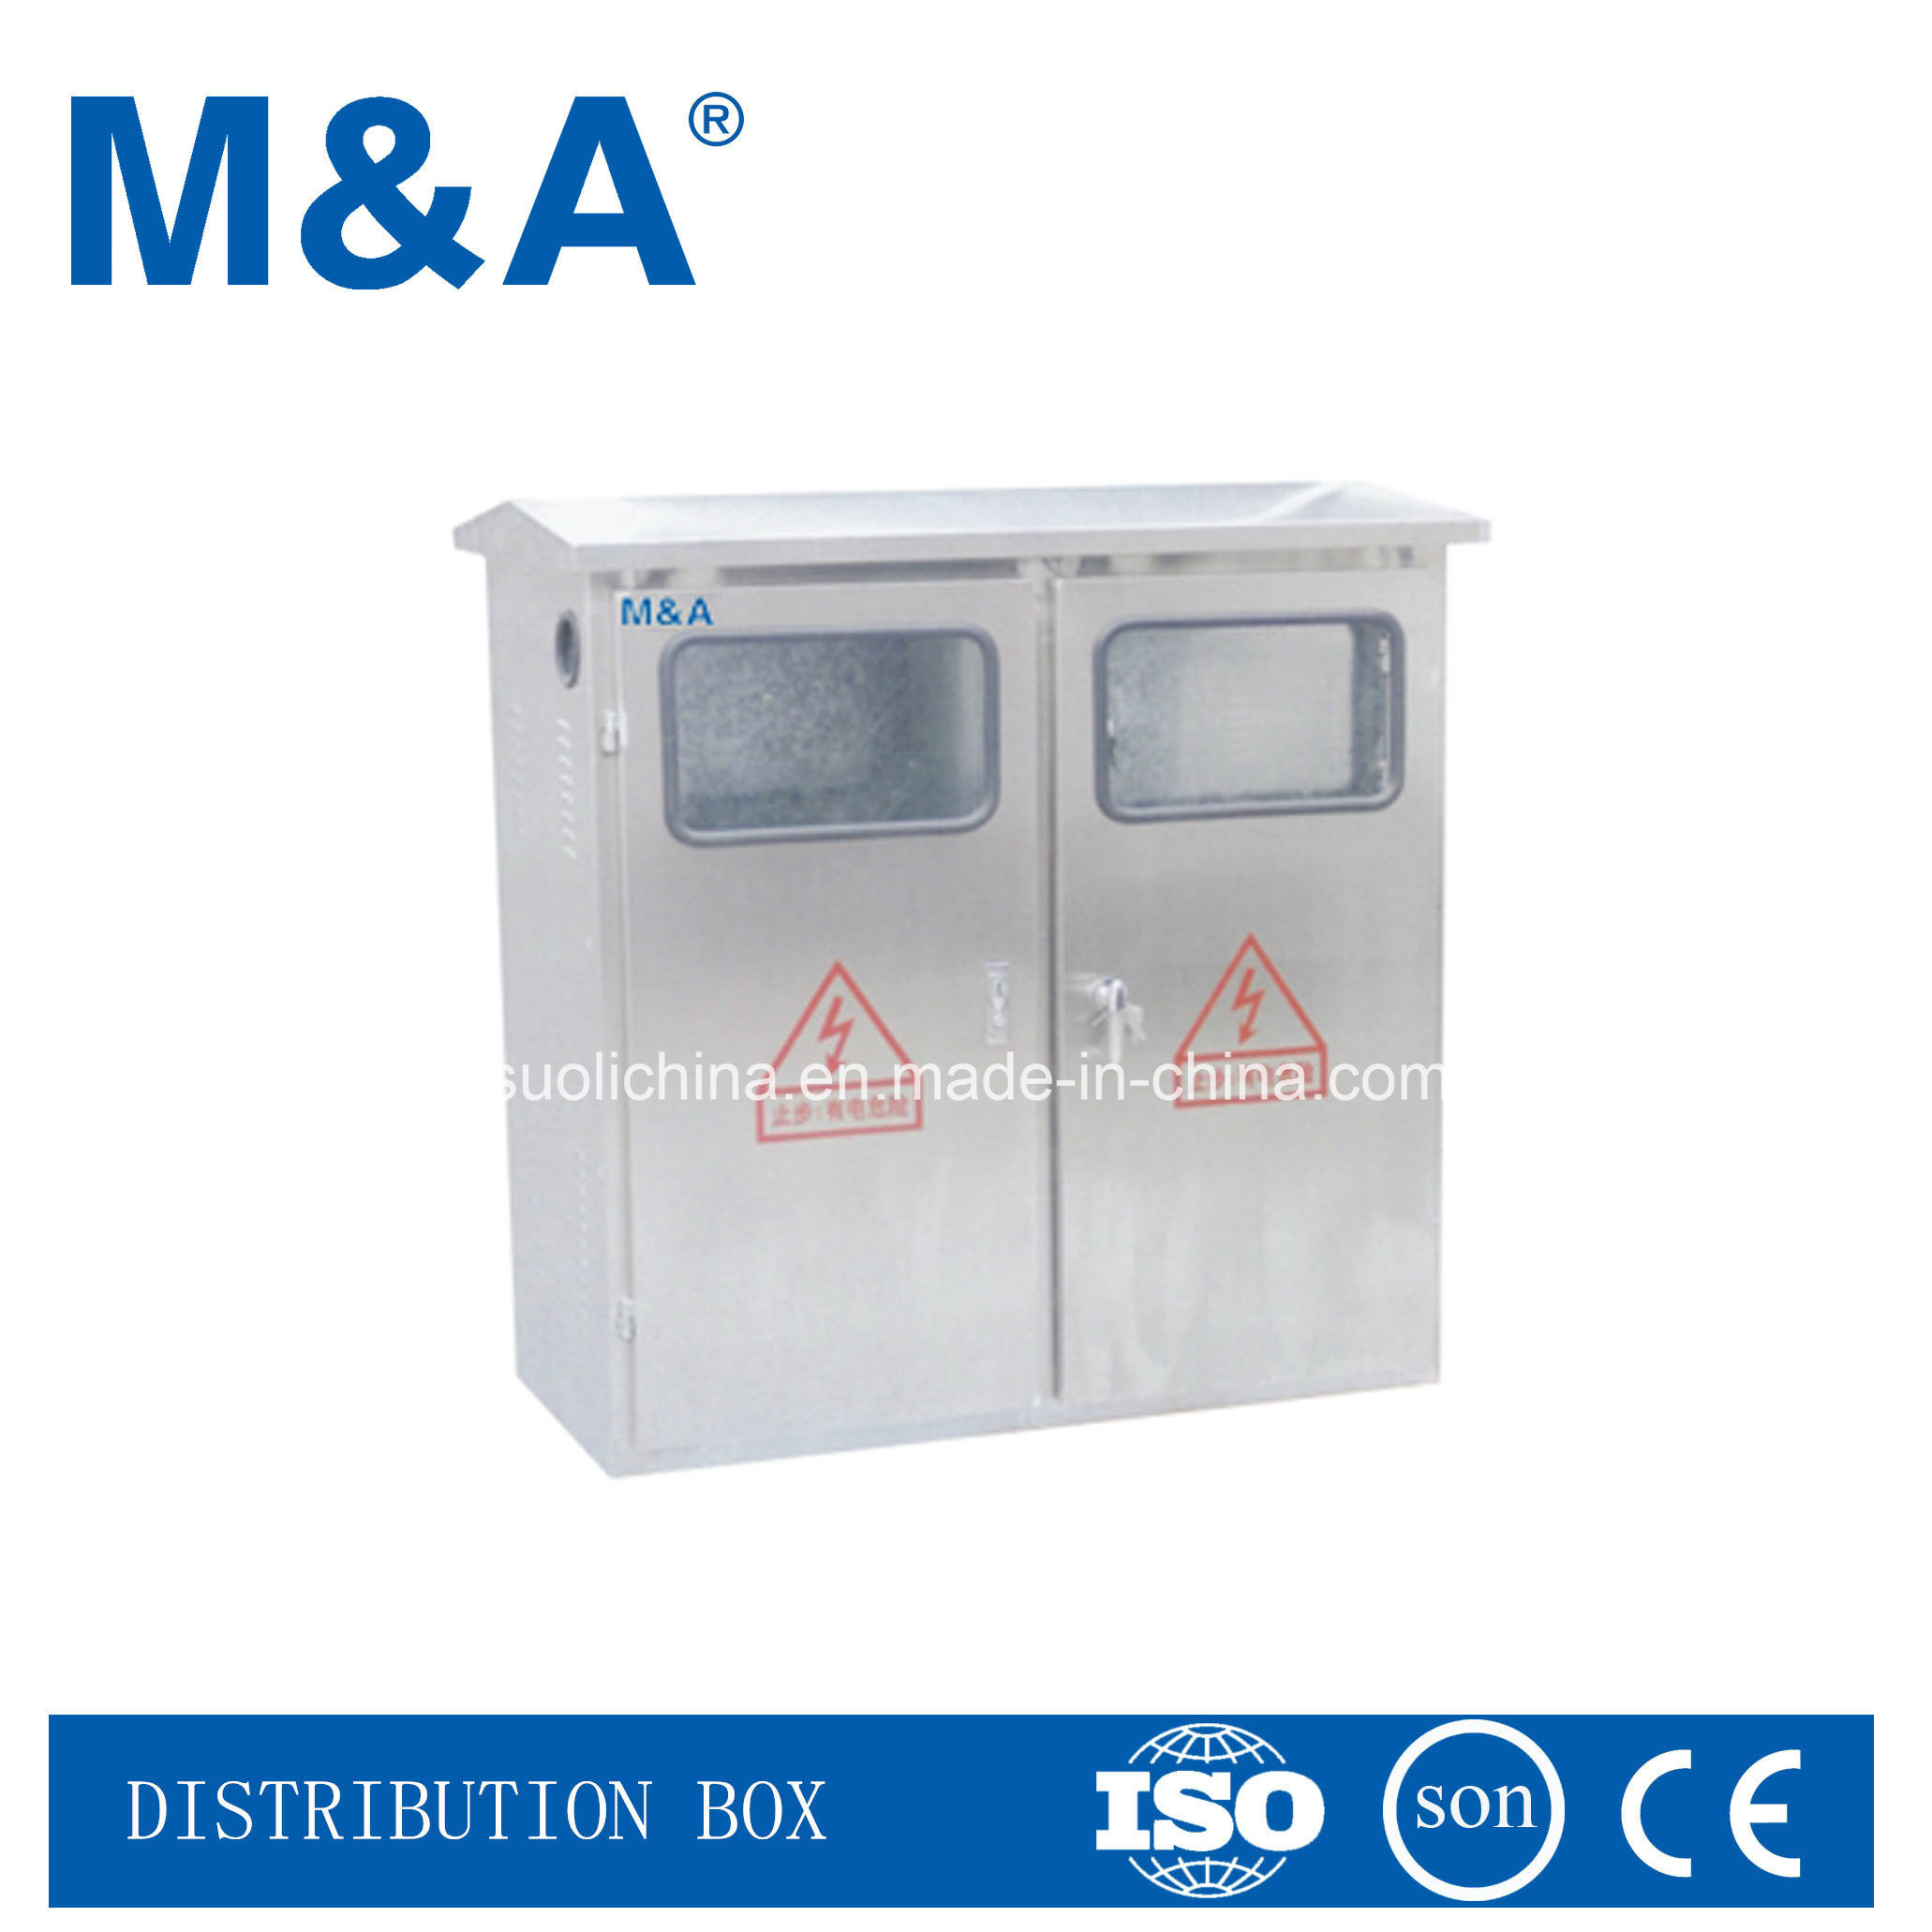 IP66-Outdoor-Power-Distribution-Cabinet-Electric-Distribution-Box Fabelhafte What is Ip 66 Dekorationen